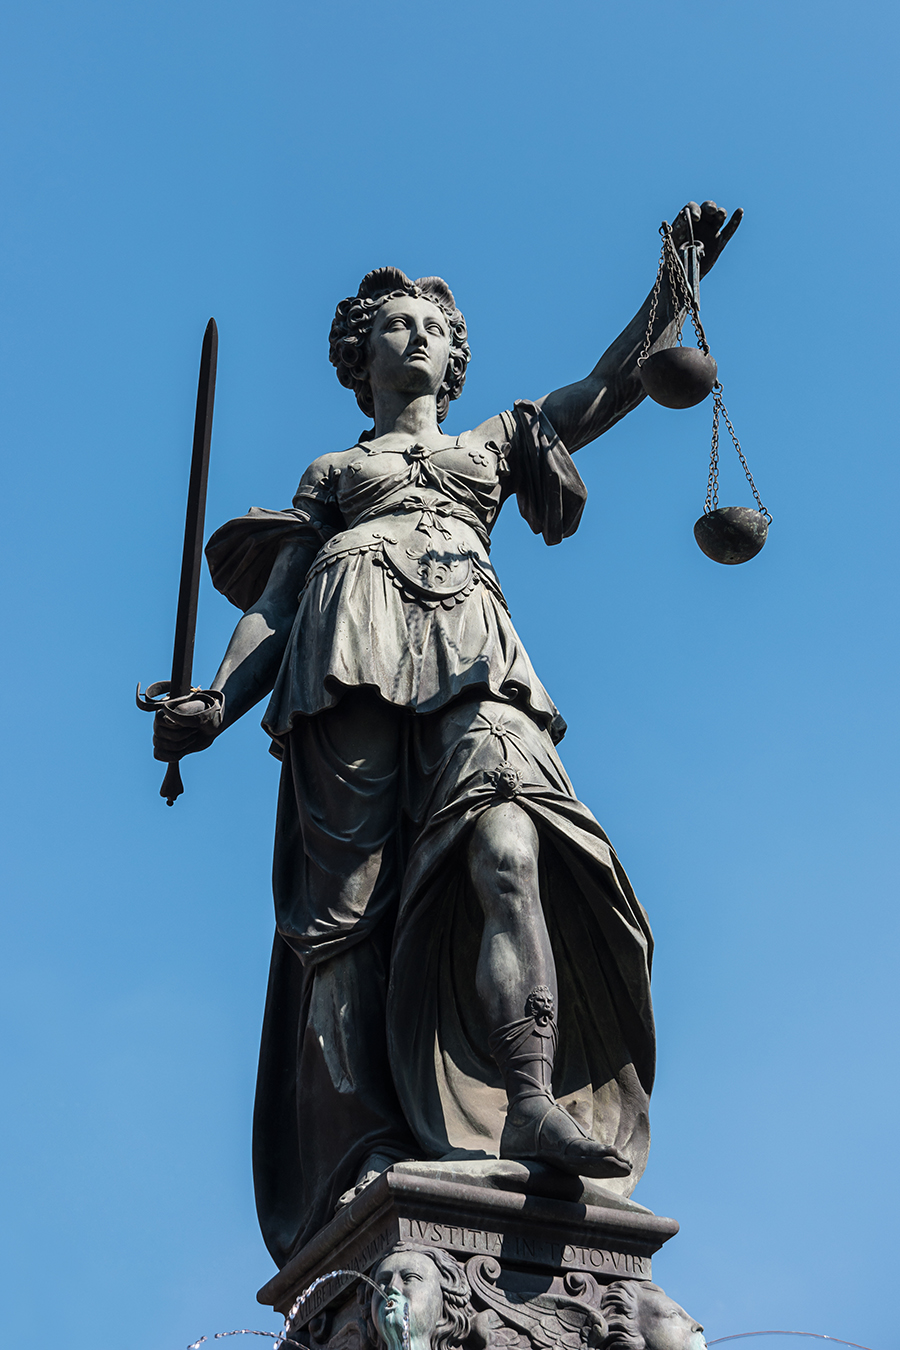 justitia on blue sky background